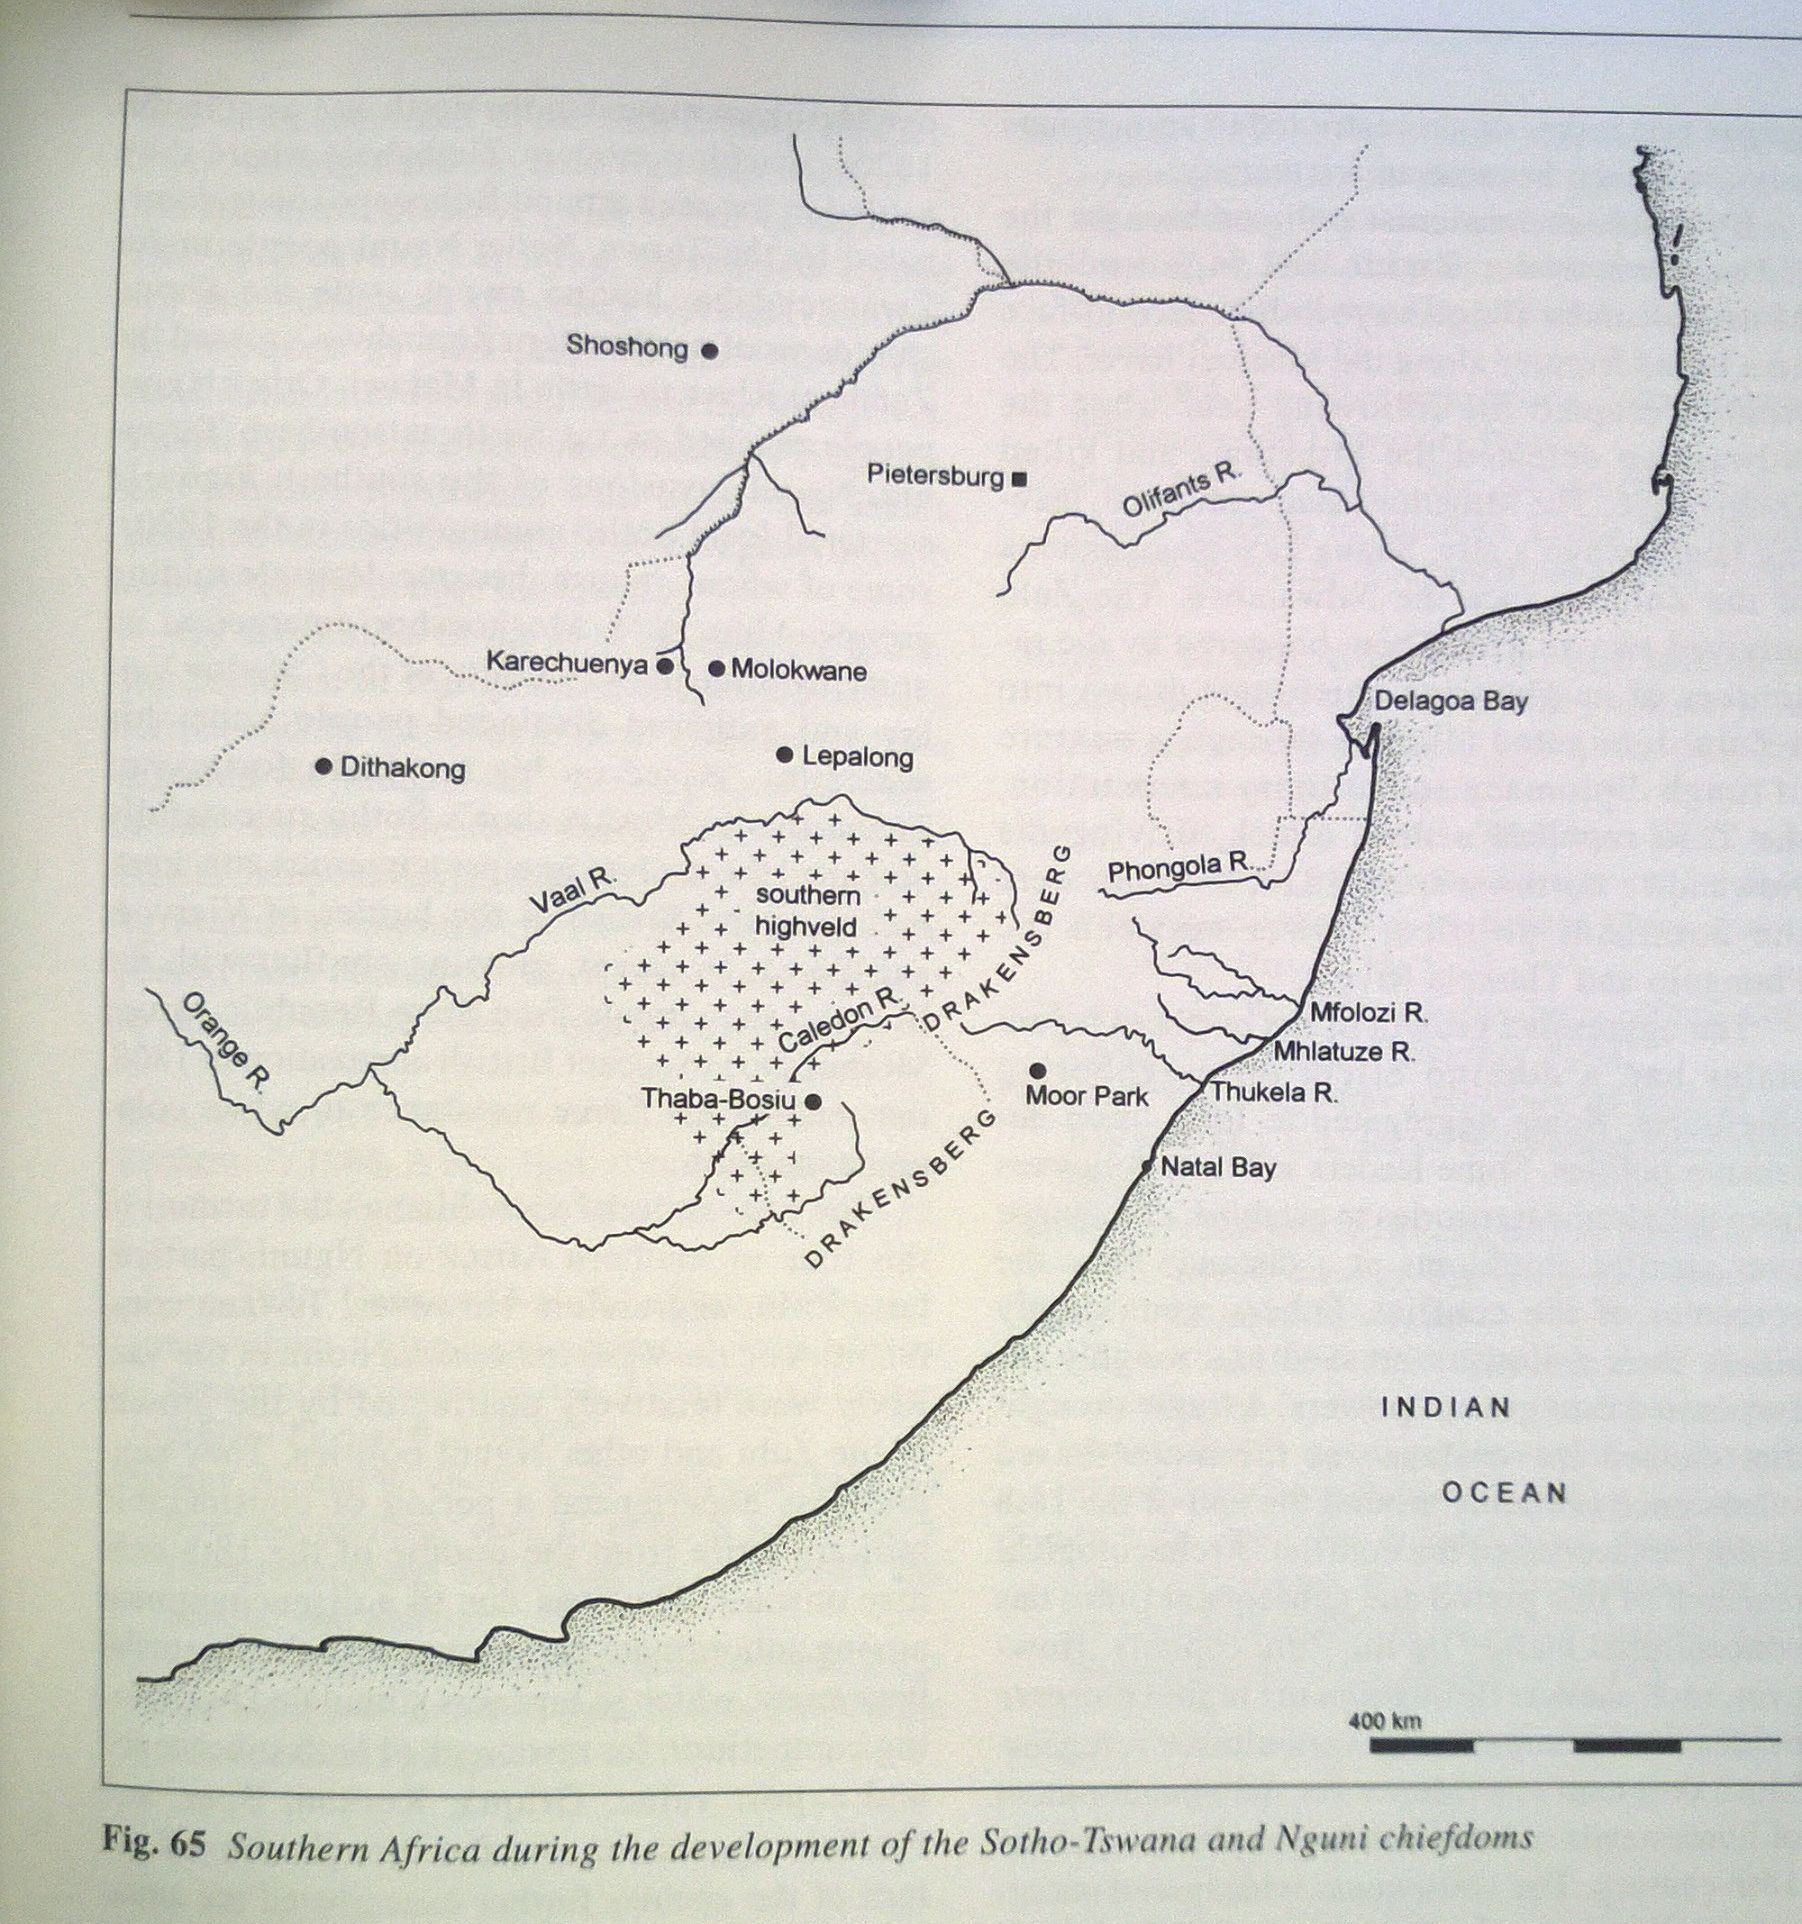 Southern Africa during the development of the Sotho Tswana and